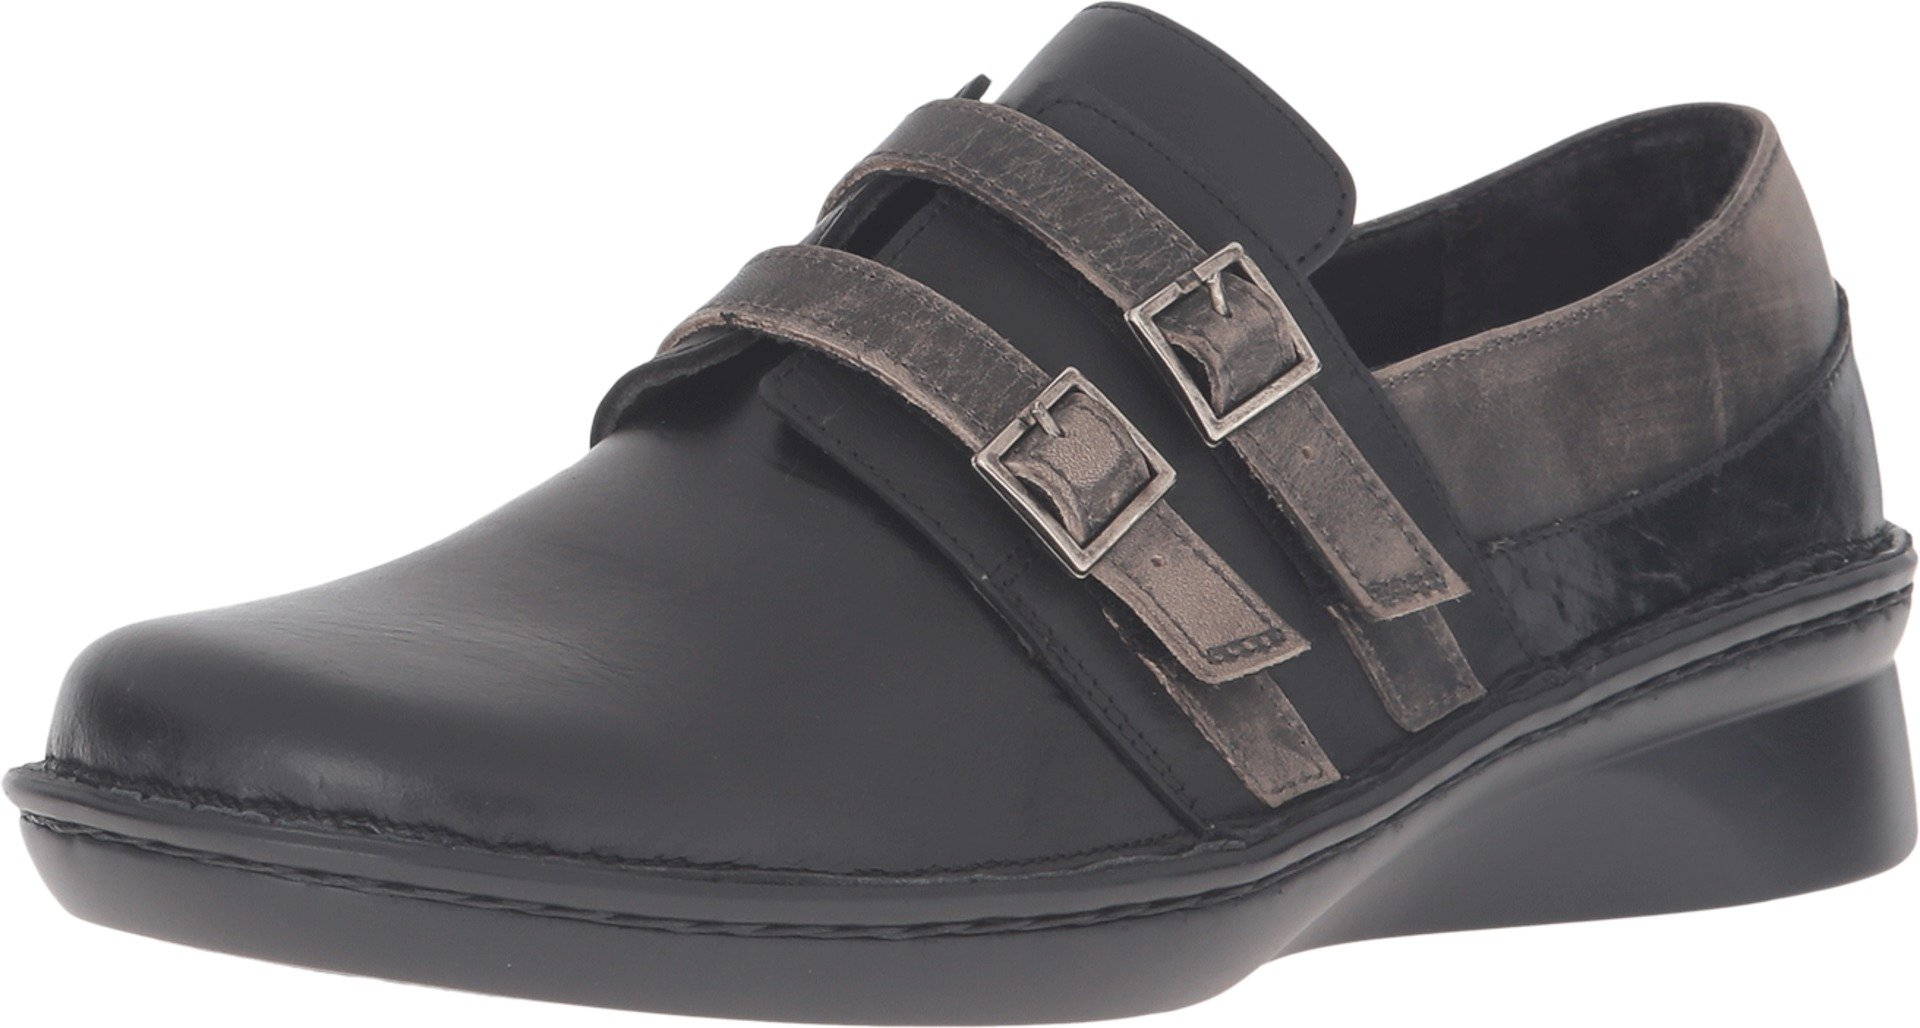 NAOT Women's Celesta Oxfords, Black Leather, Polyurethane, Cork, Latex, Suede, 38 M EU, 7-7.5 M